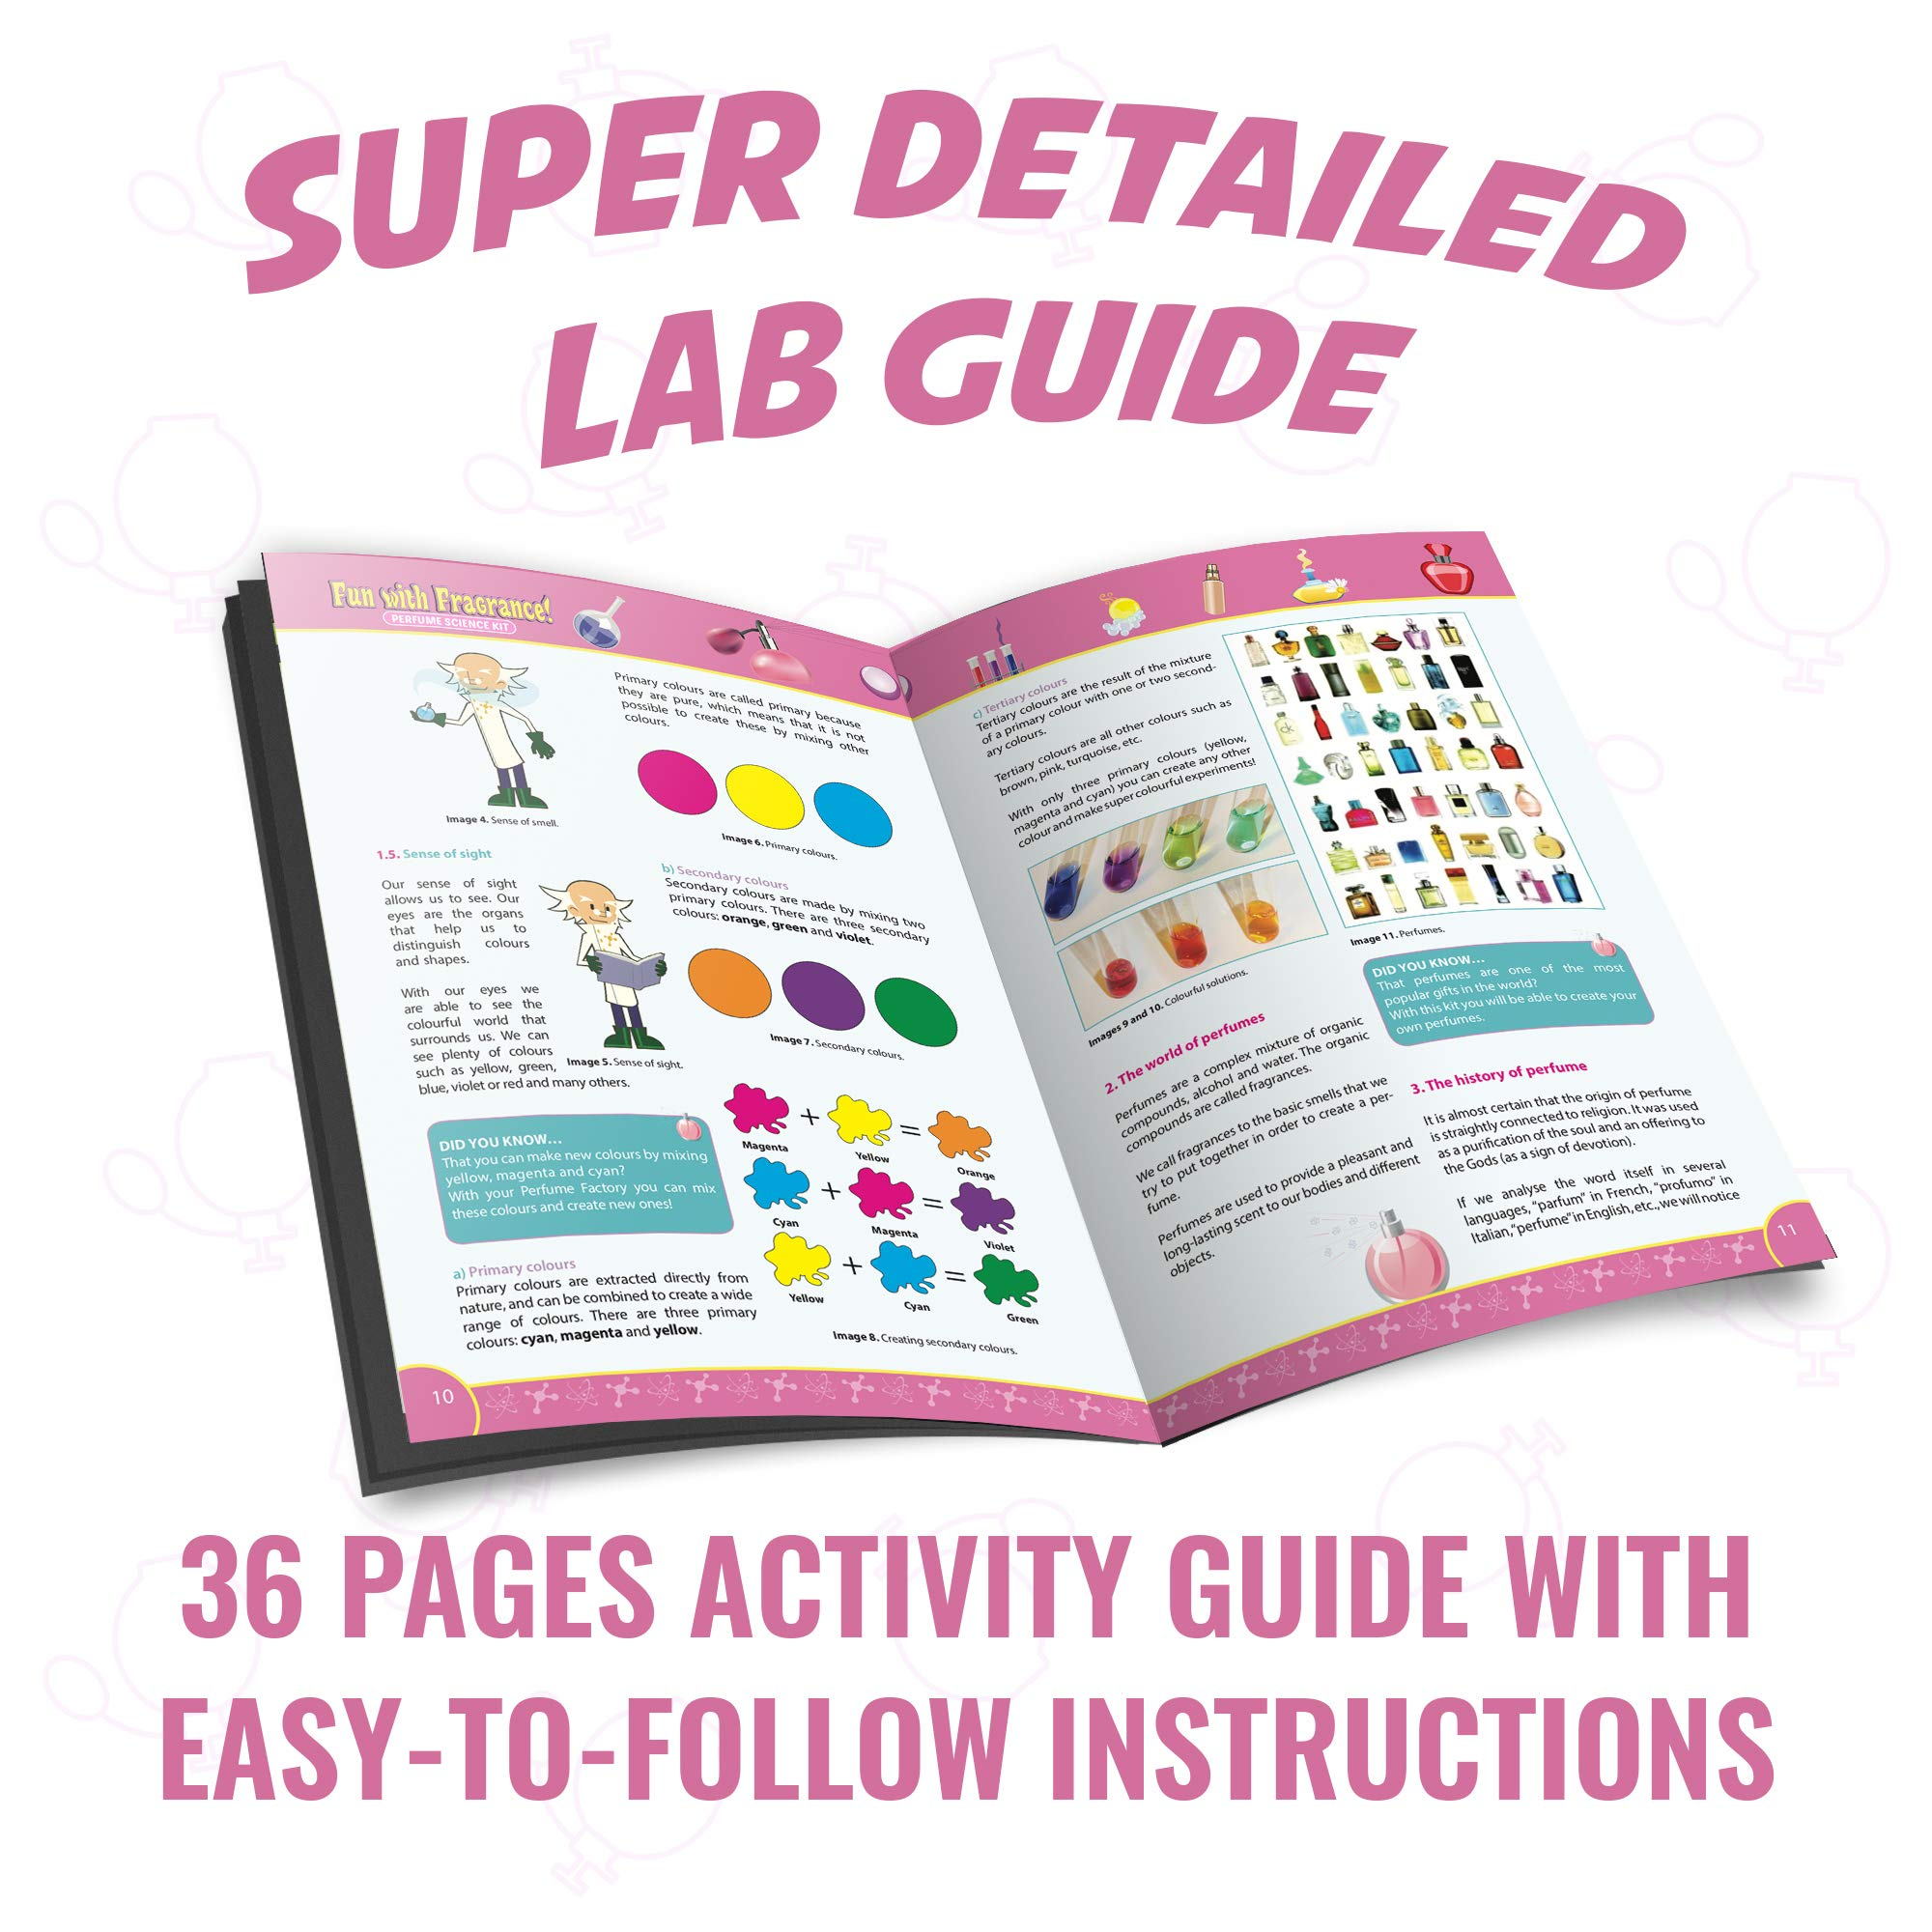 Playz Fun with Fragrance Perfume Making Science Kit for Kids - 13+ STEM Experiments & DIY Activities to Learn the Chemistry Behind Perfumes with 36 Page Lab Guide & 27+ Tools and Ingredients for Girls by Playz (Image #4)